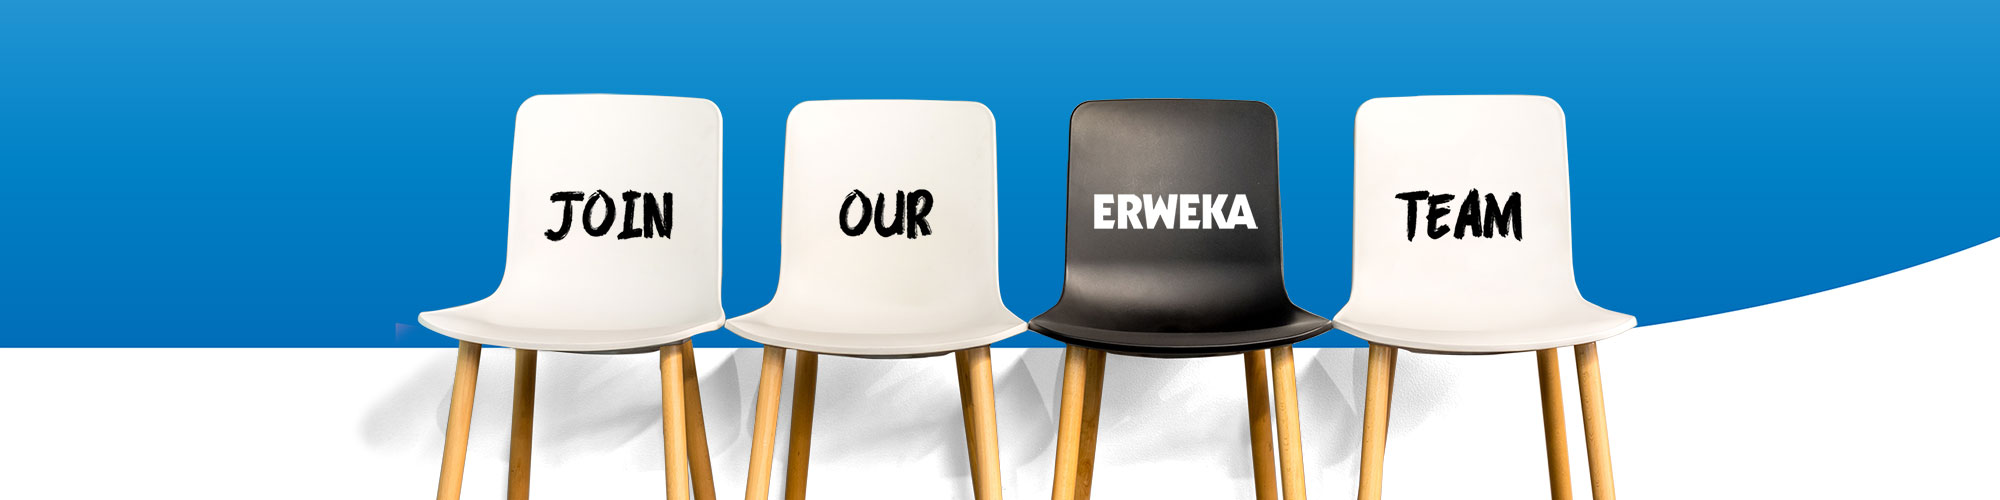 Home Office Redakteur Jobs Erweka Gmbh